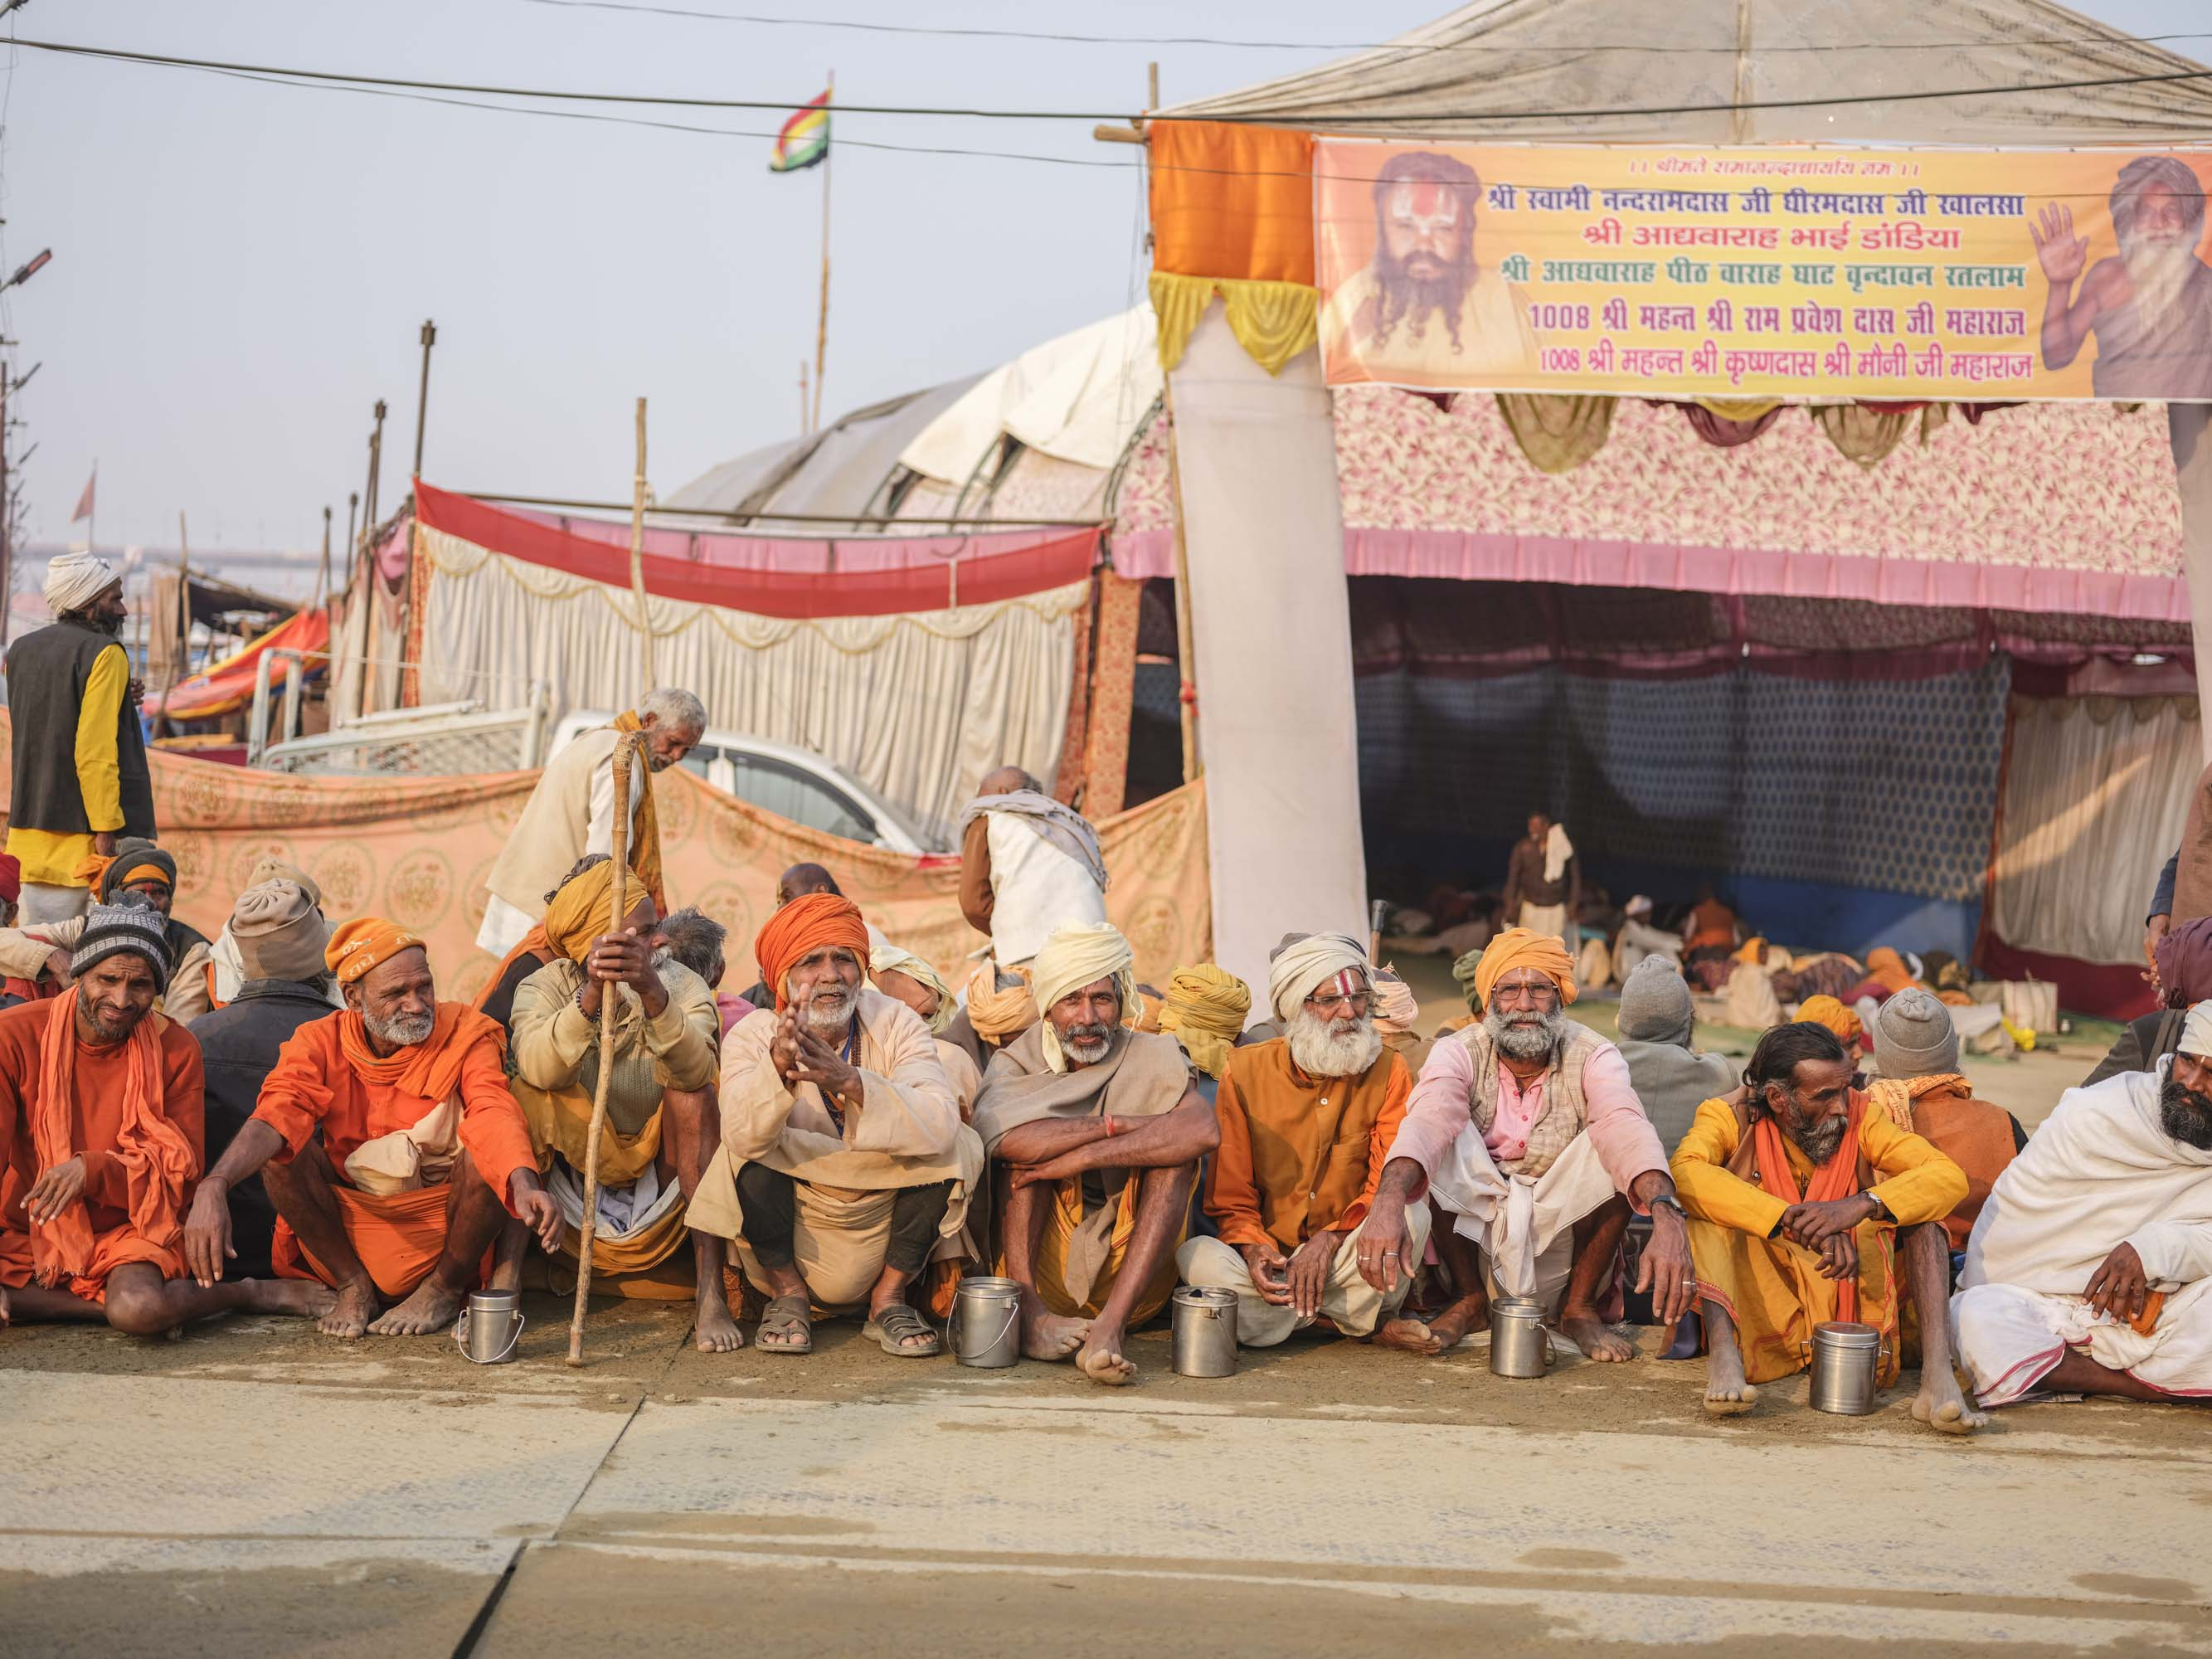 waiting for free food and mail camp pilgrims Kumbh mela 2019 India Allahabad Prayagraj Ardh hindu religious Festival event rivers photographer jose jeuland photography temple